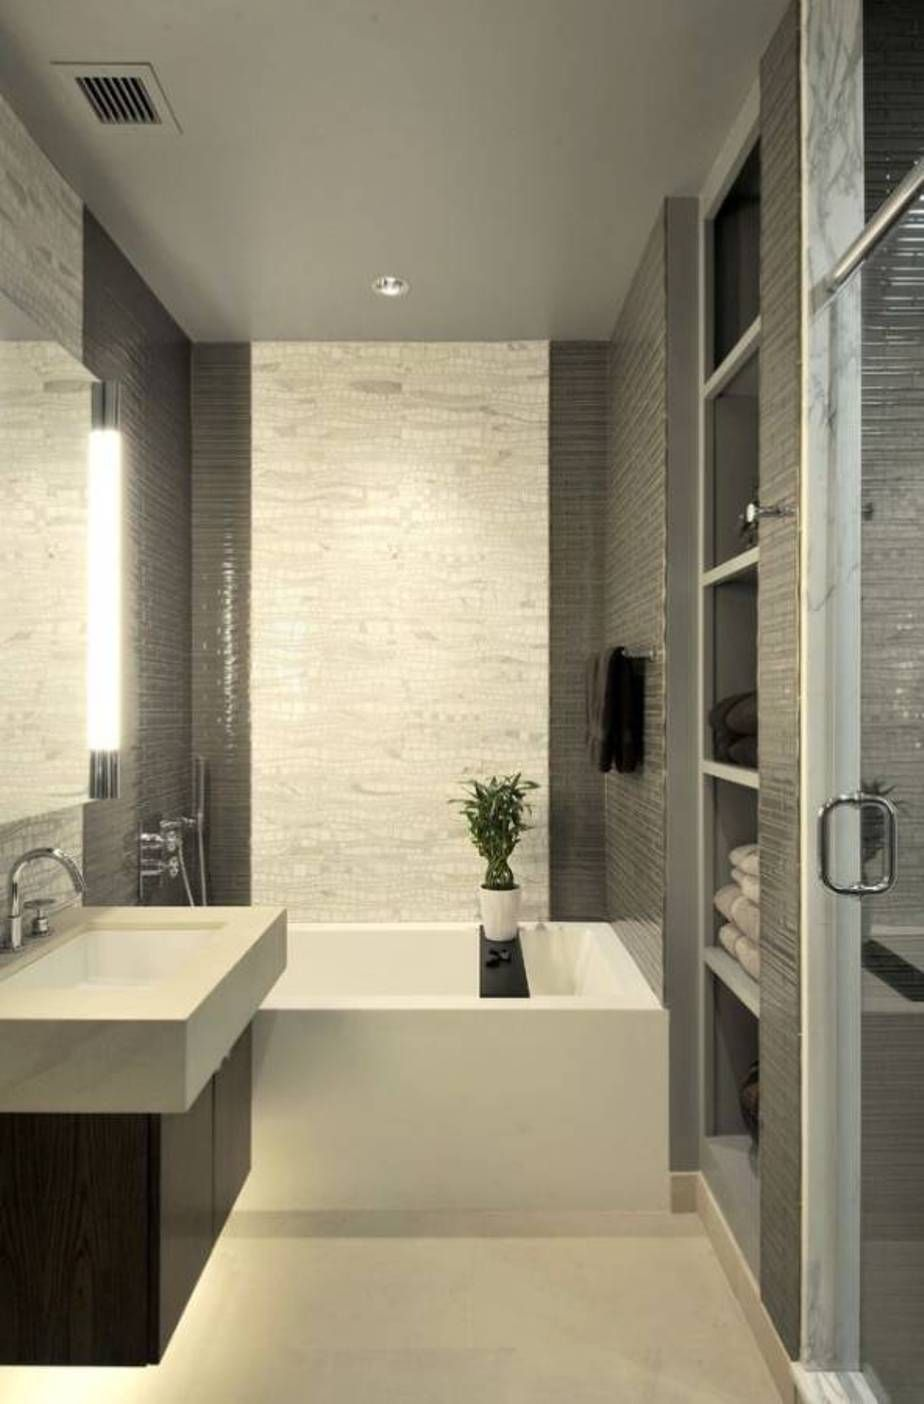 Bathroom modern small bathroom design ideas modern for Small bathroom design ideas pictures